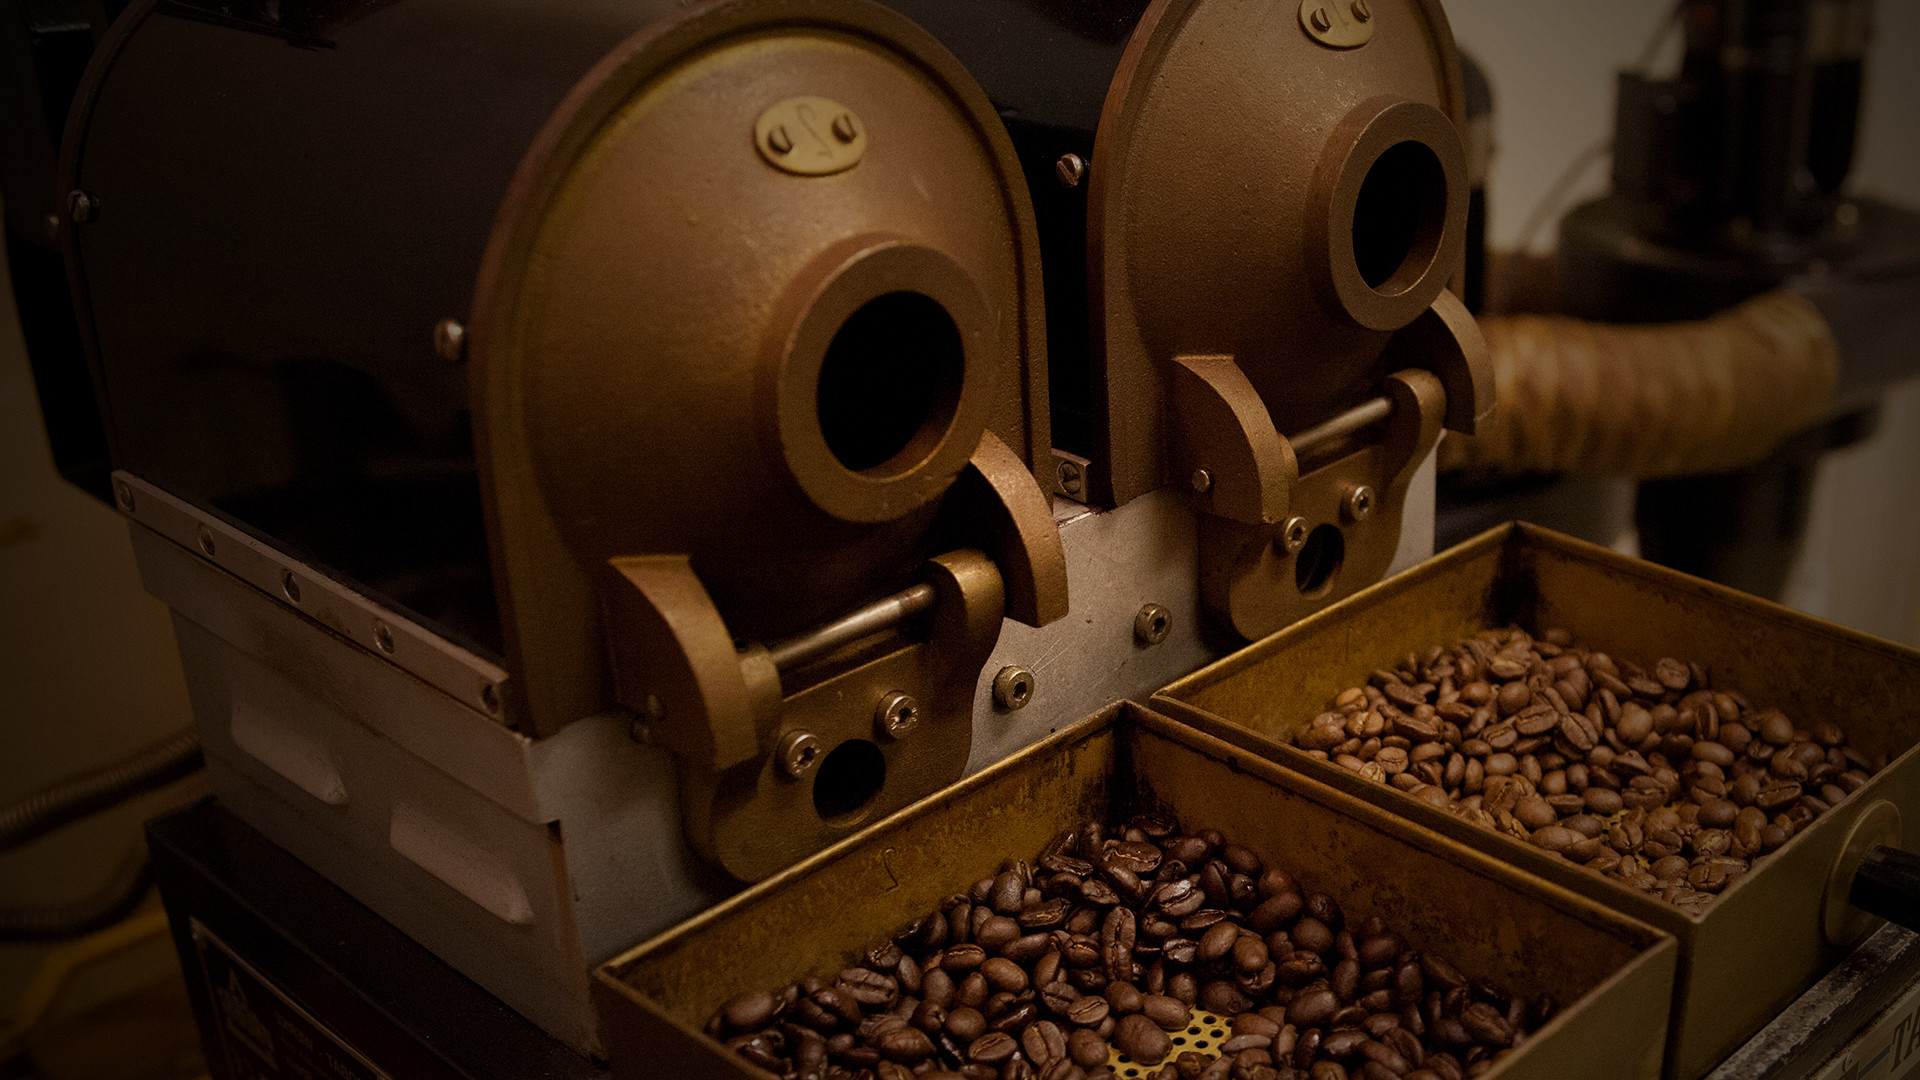 Gevalia Kaffe Prides Itself on 150 Years of Coffee-Making Expertise